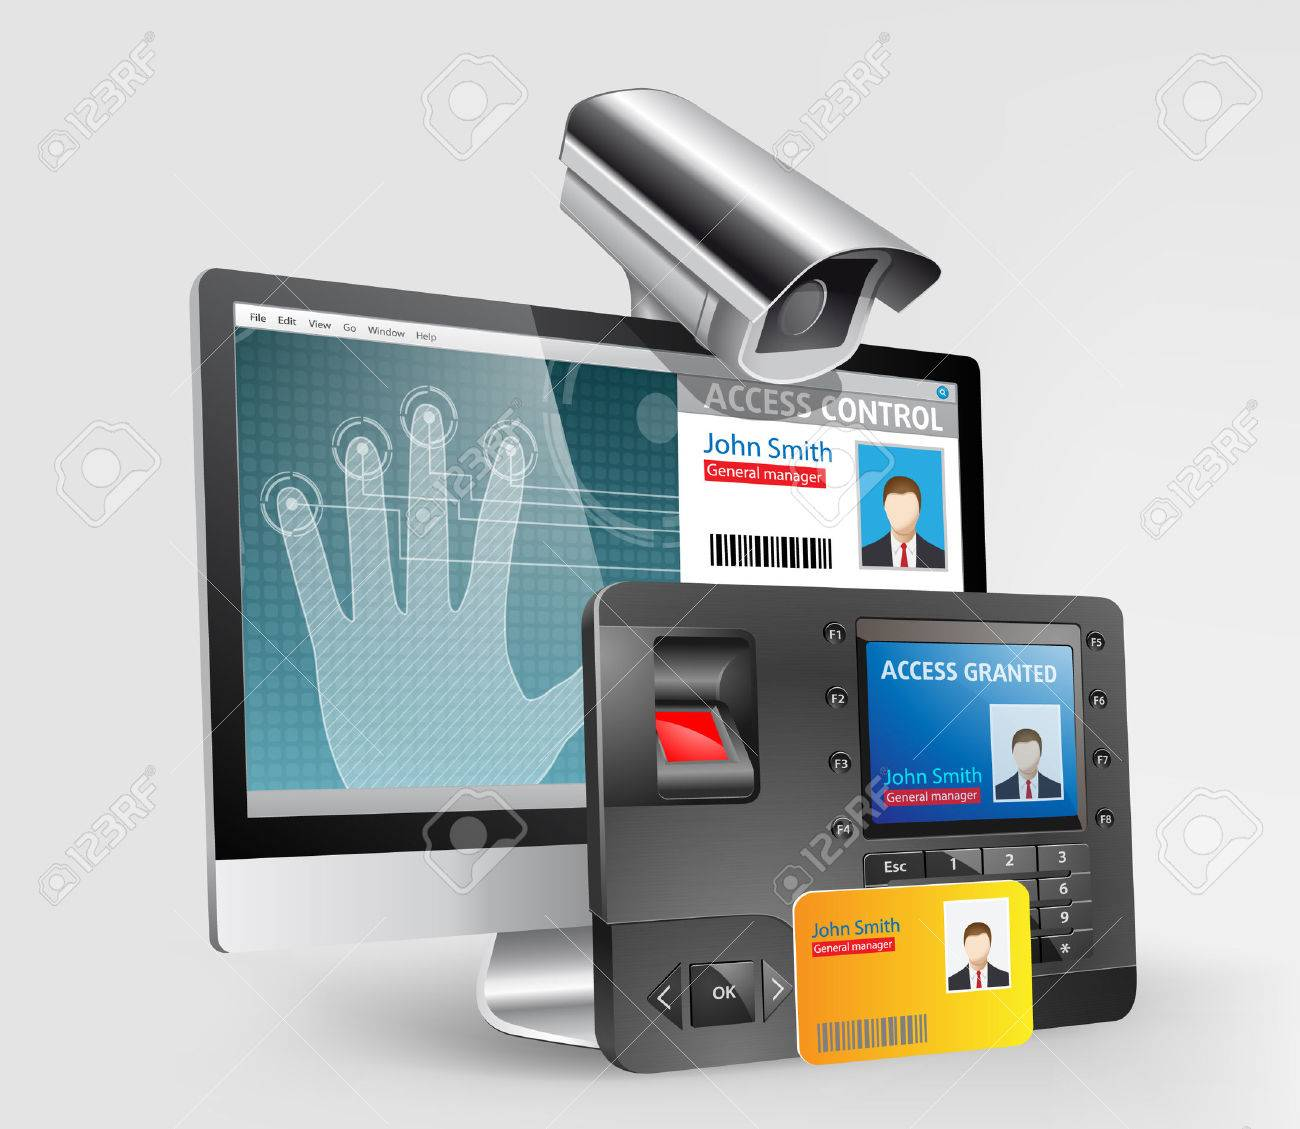 Access control system, fingerprint scanner and Mifare proximity reader - 47856996